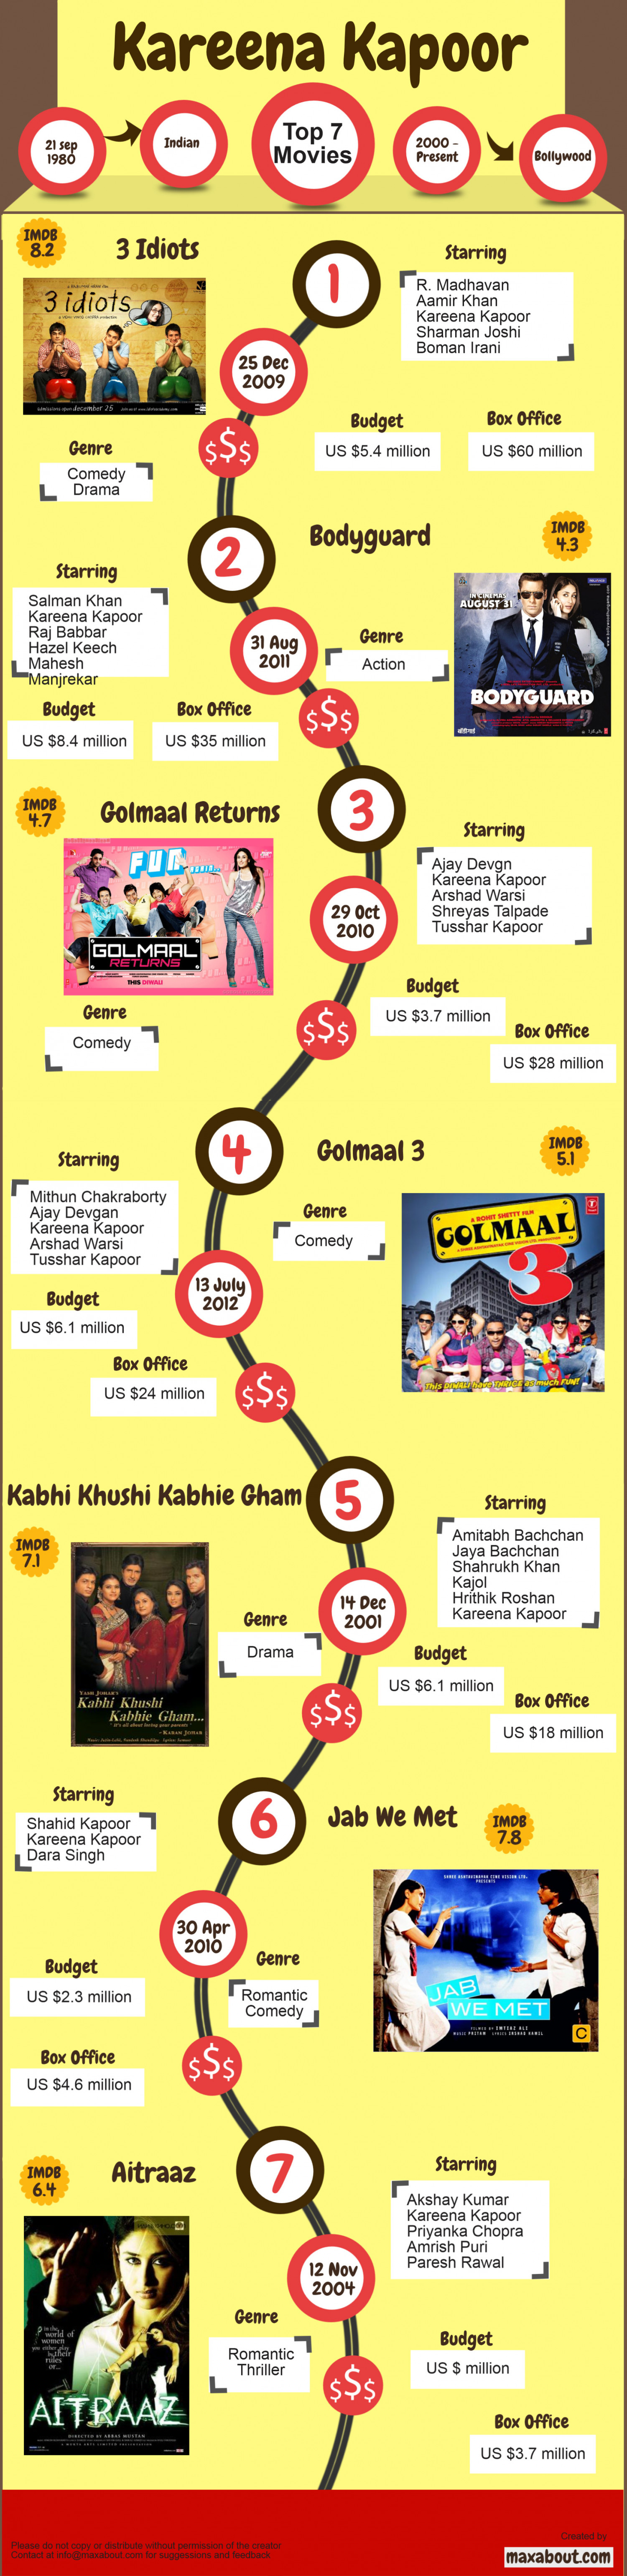 Top 7 Movies of Kareena Kapoor Infographic